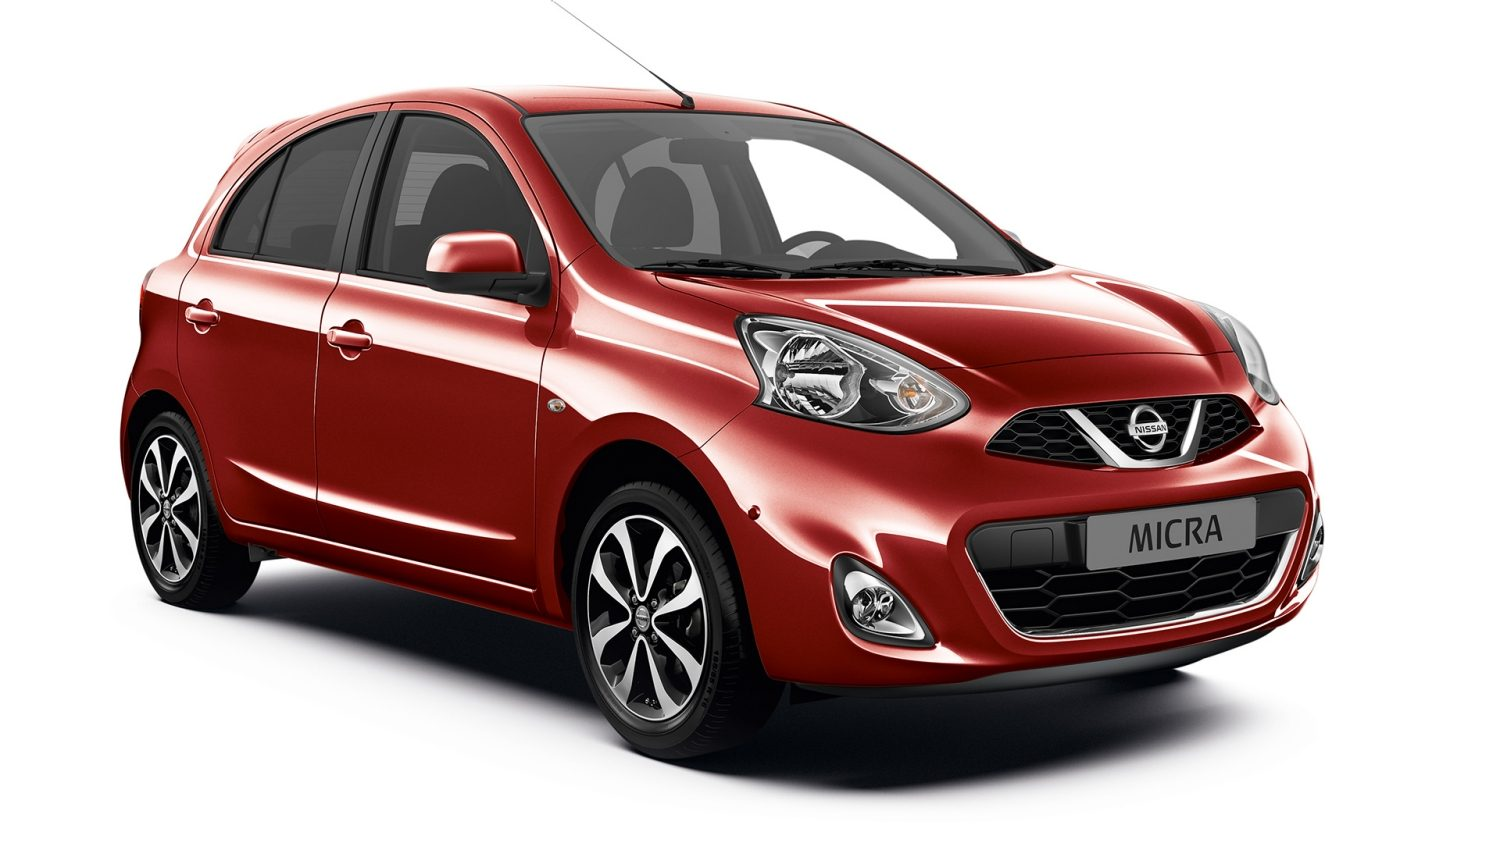 nissan micra versions specifications affordable car. Black Bedroom Furniture Sets. Home Design Ideas